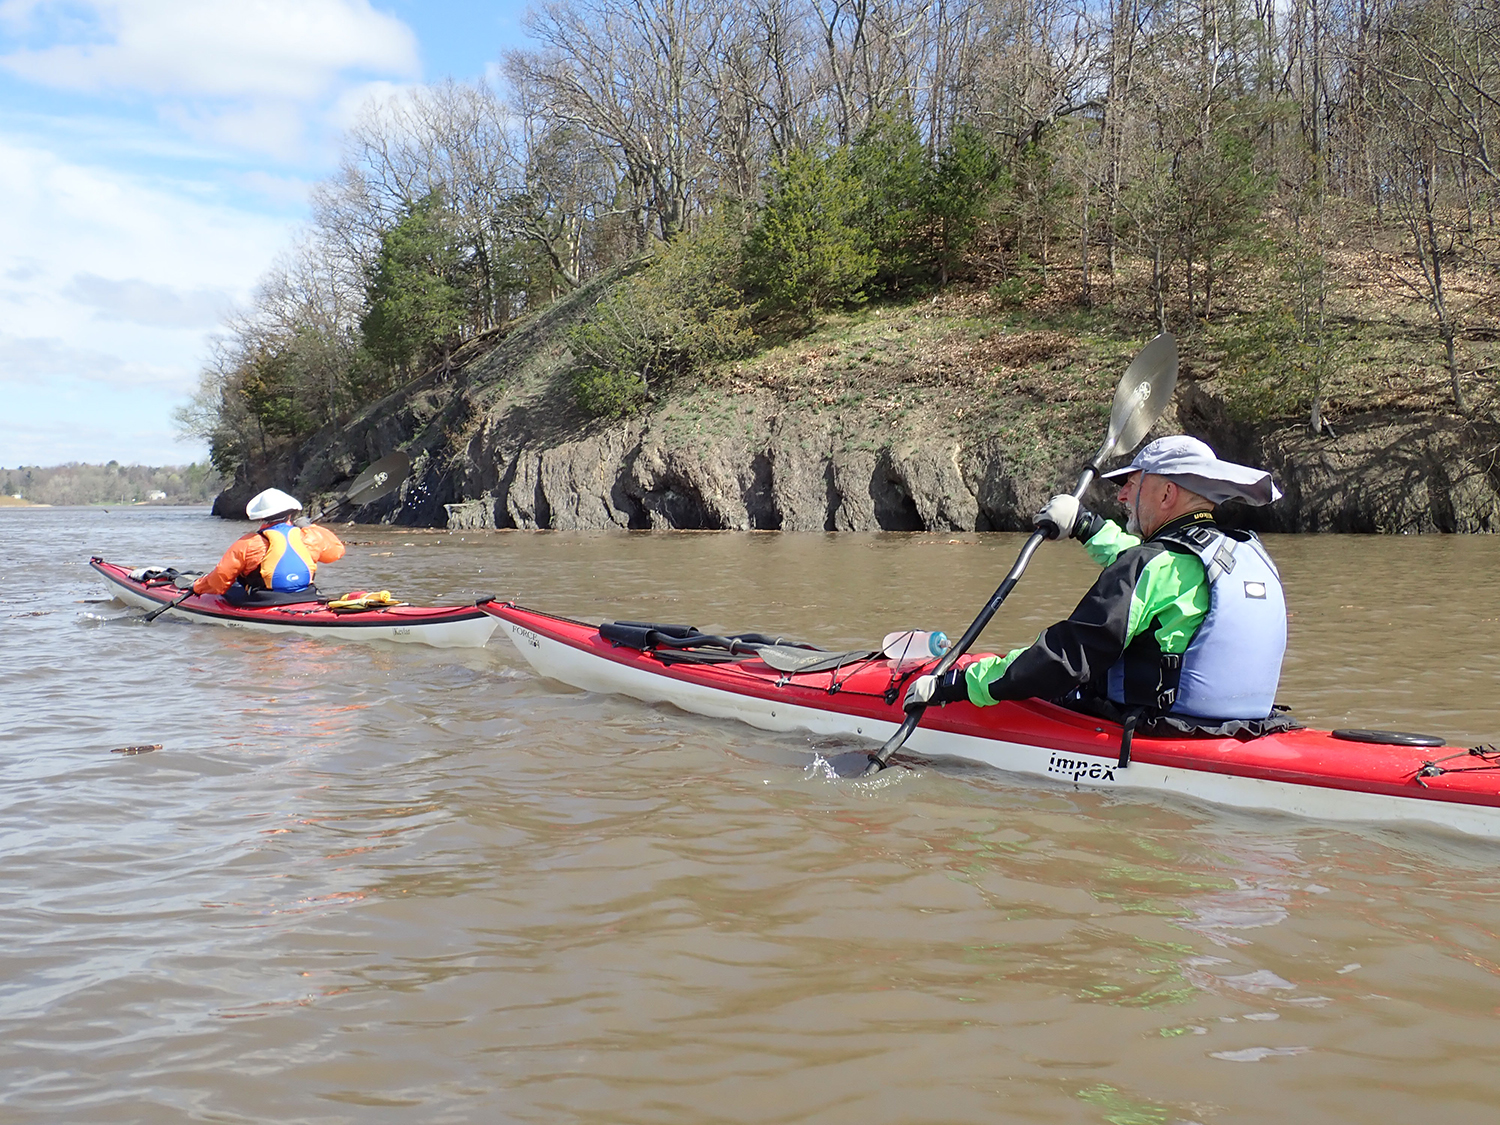 Fighting wind and current on the Mohawk River.  Alan Mapes